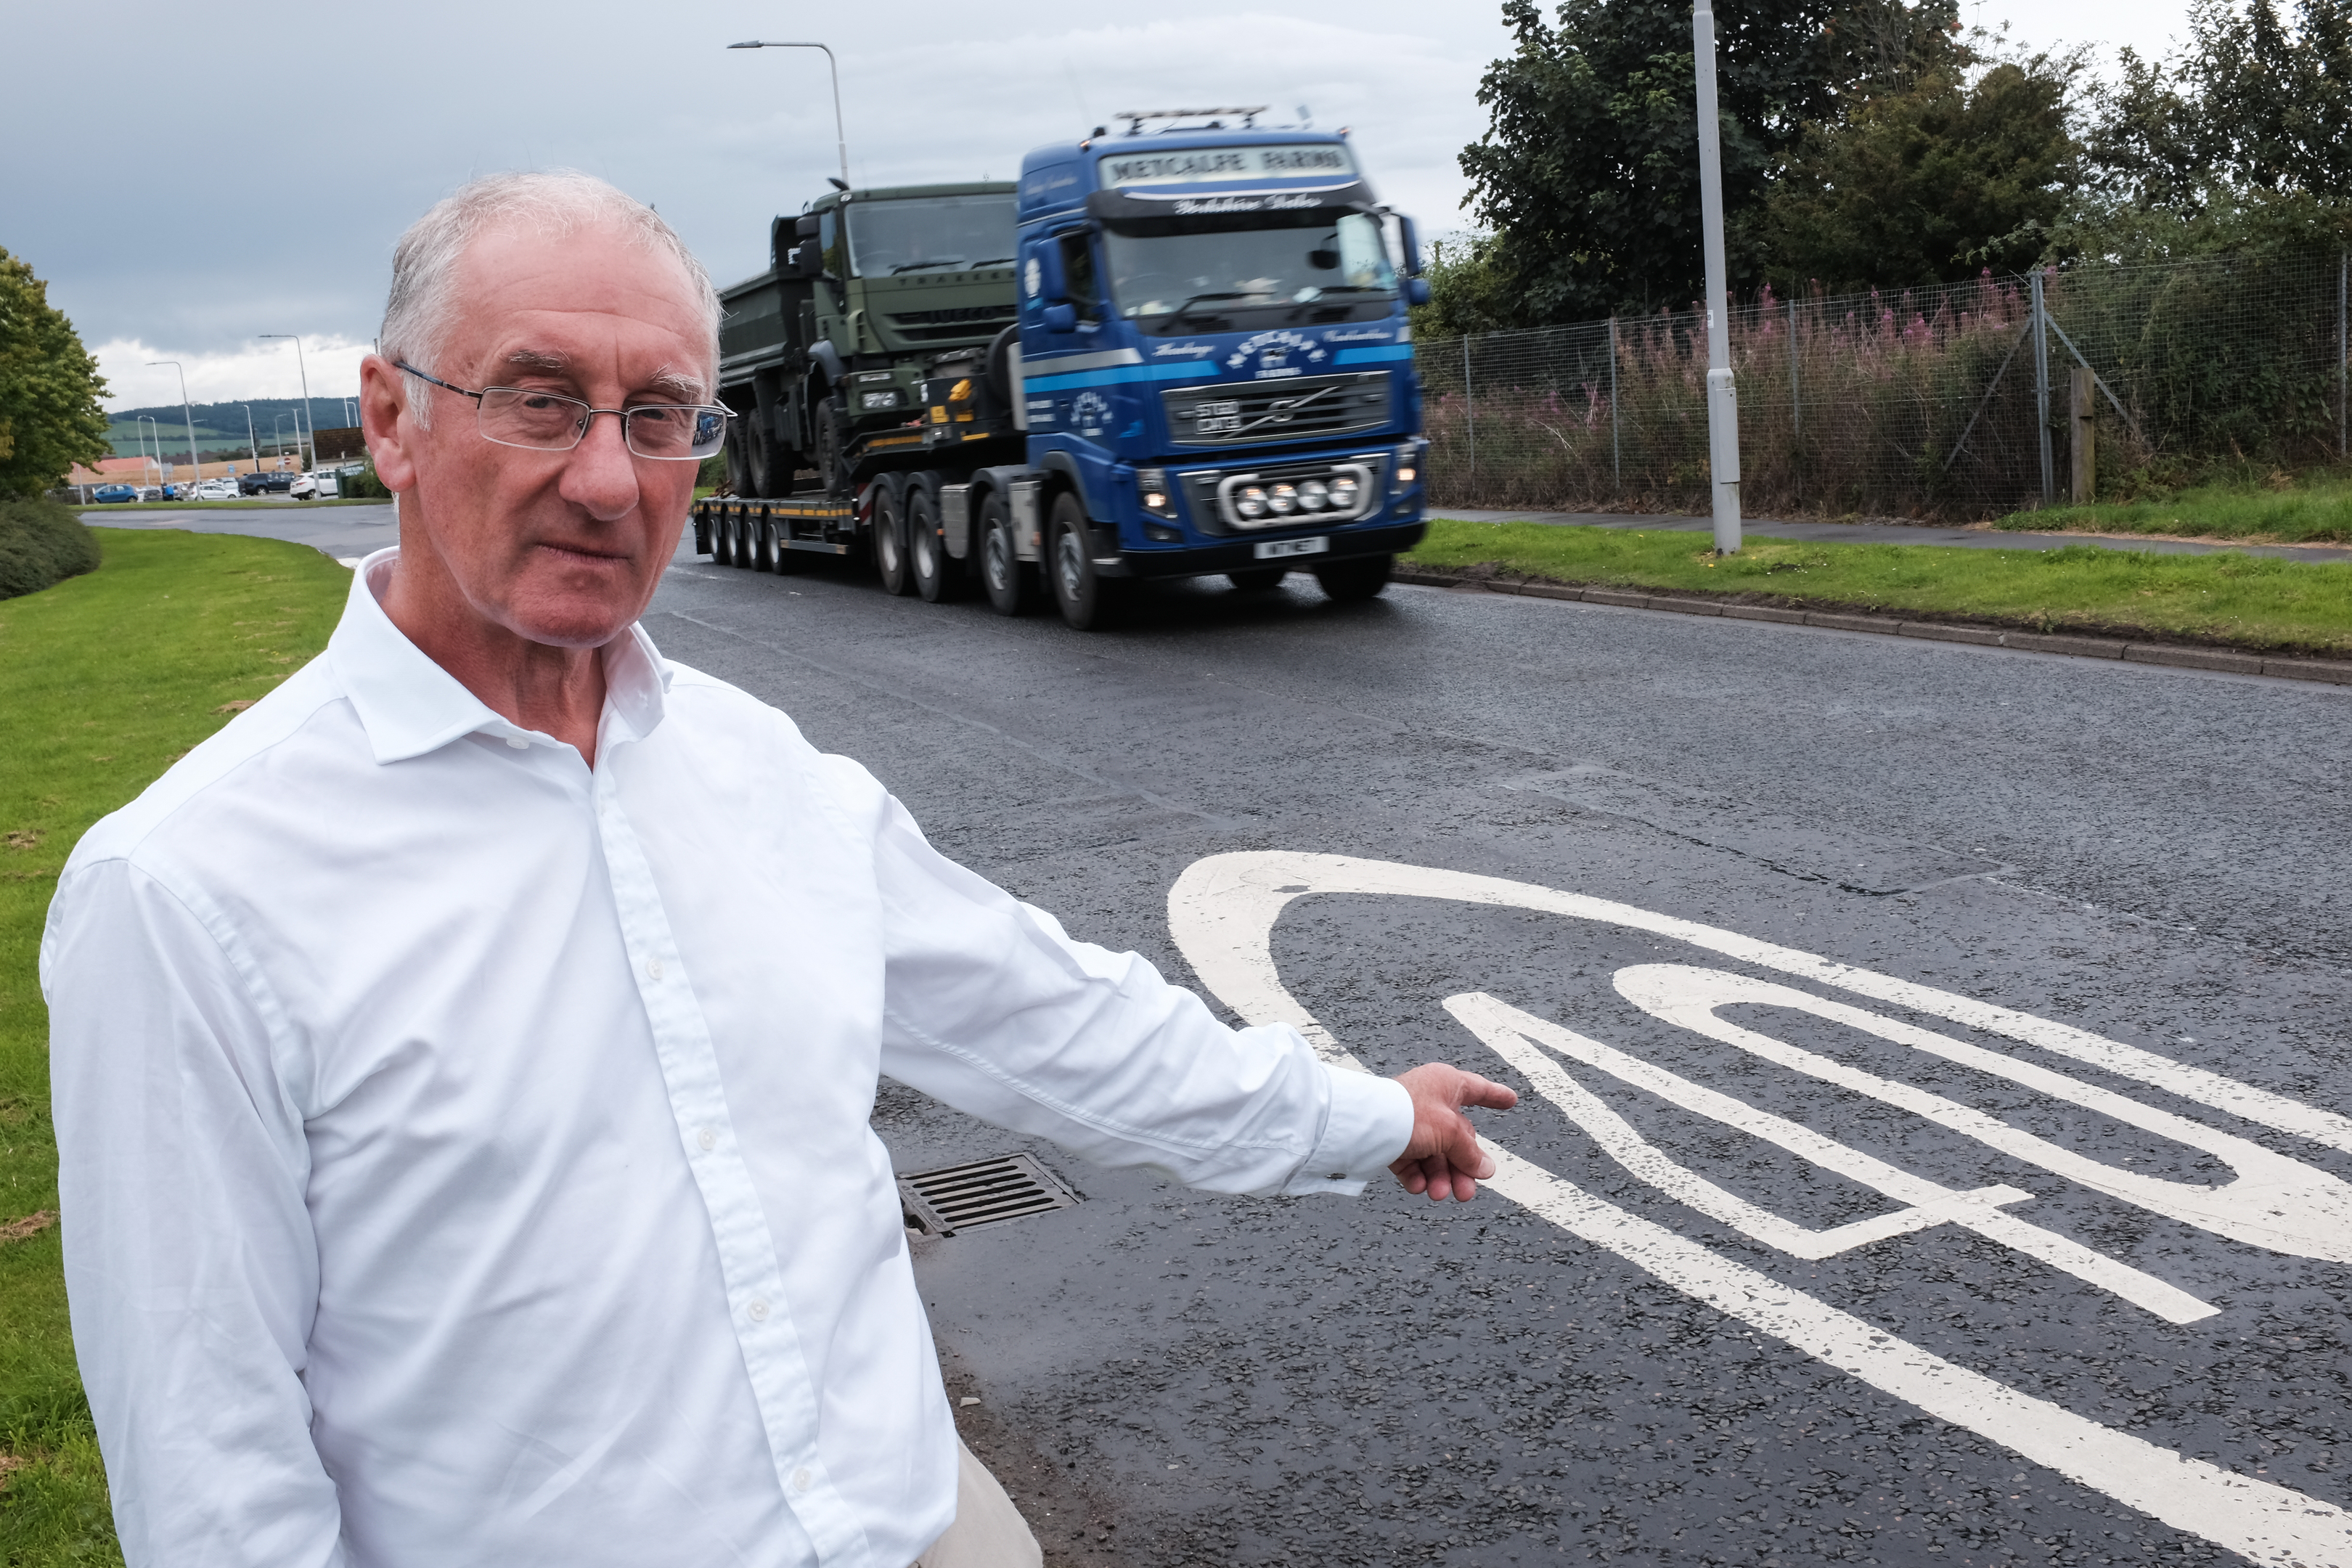 Councillor Bill Porteous wants to start a debate on reducing Fife's speed limit to 40mph.